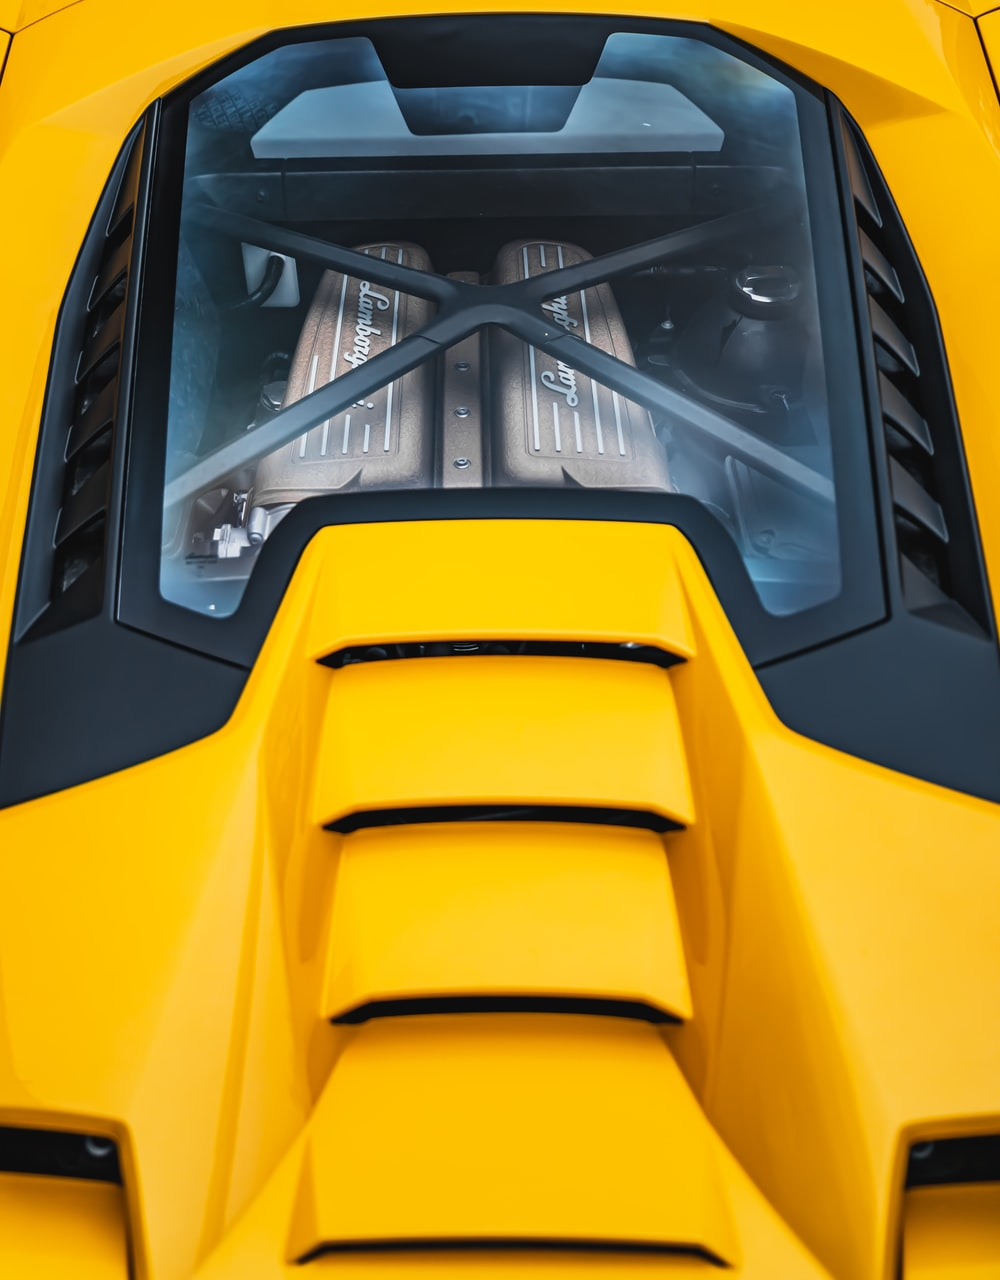 yellow and black train during daytime